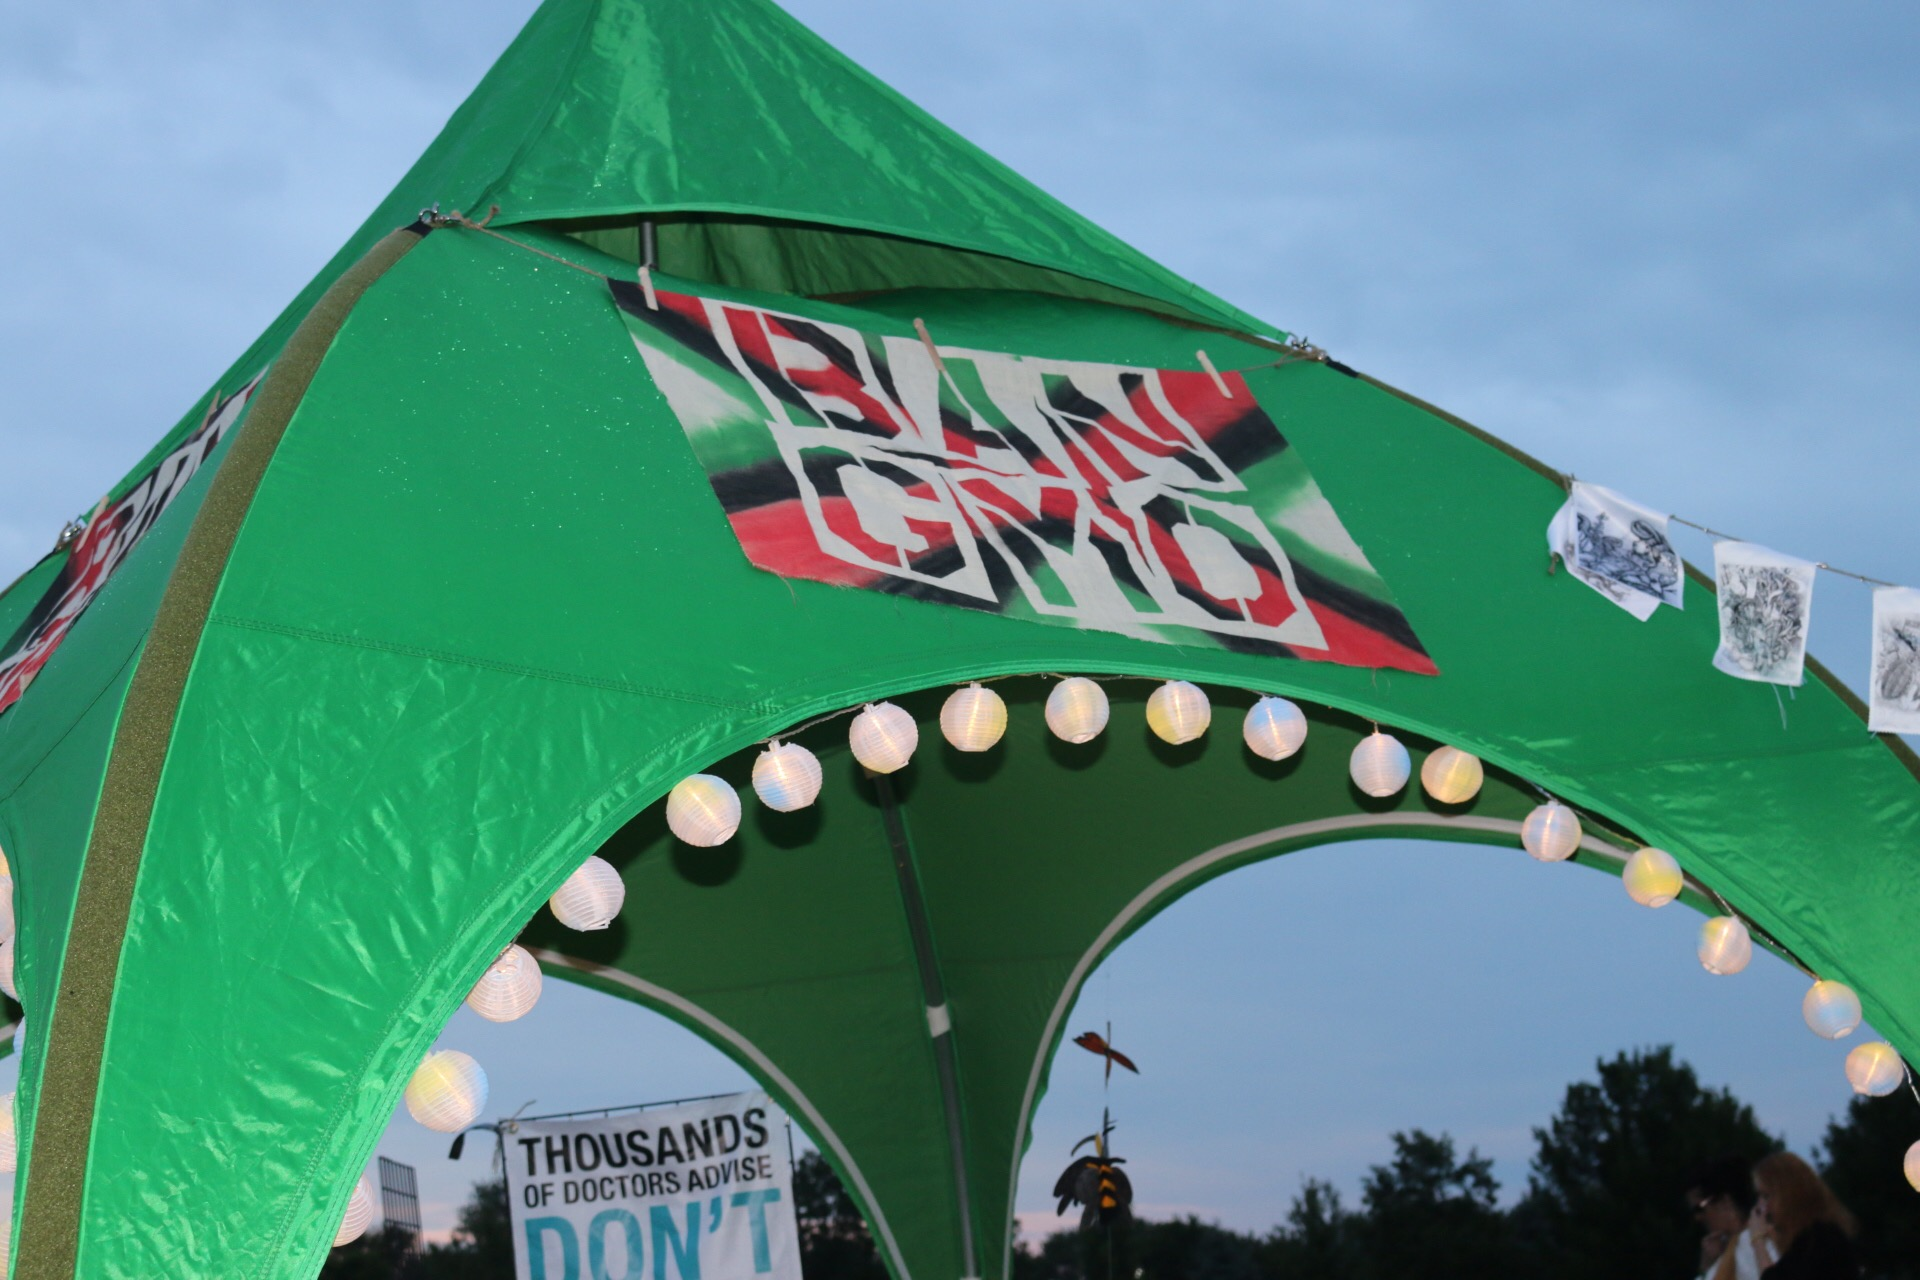 The official Ban GMOs tent at a recent Neil Young concert in the US. Photo: Beyond GM.